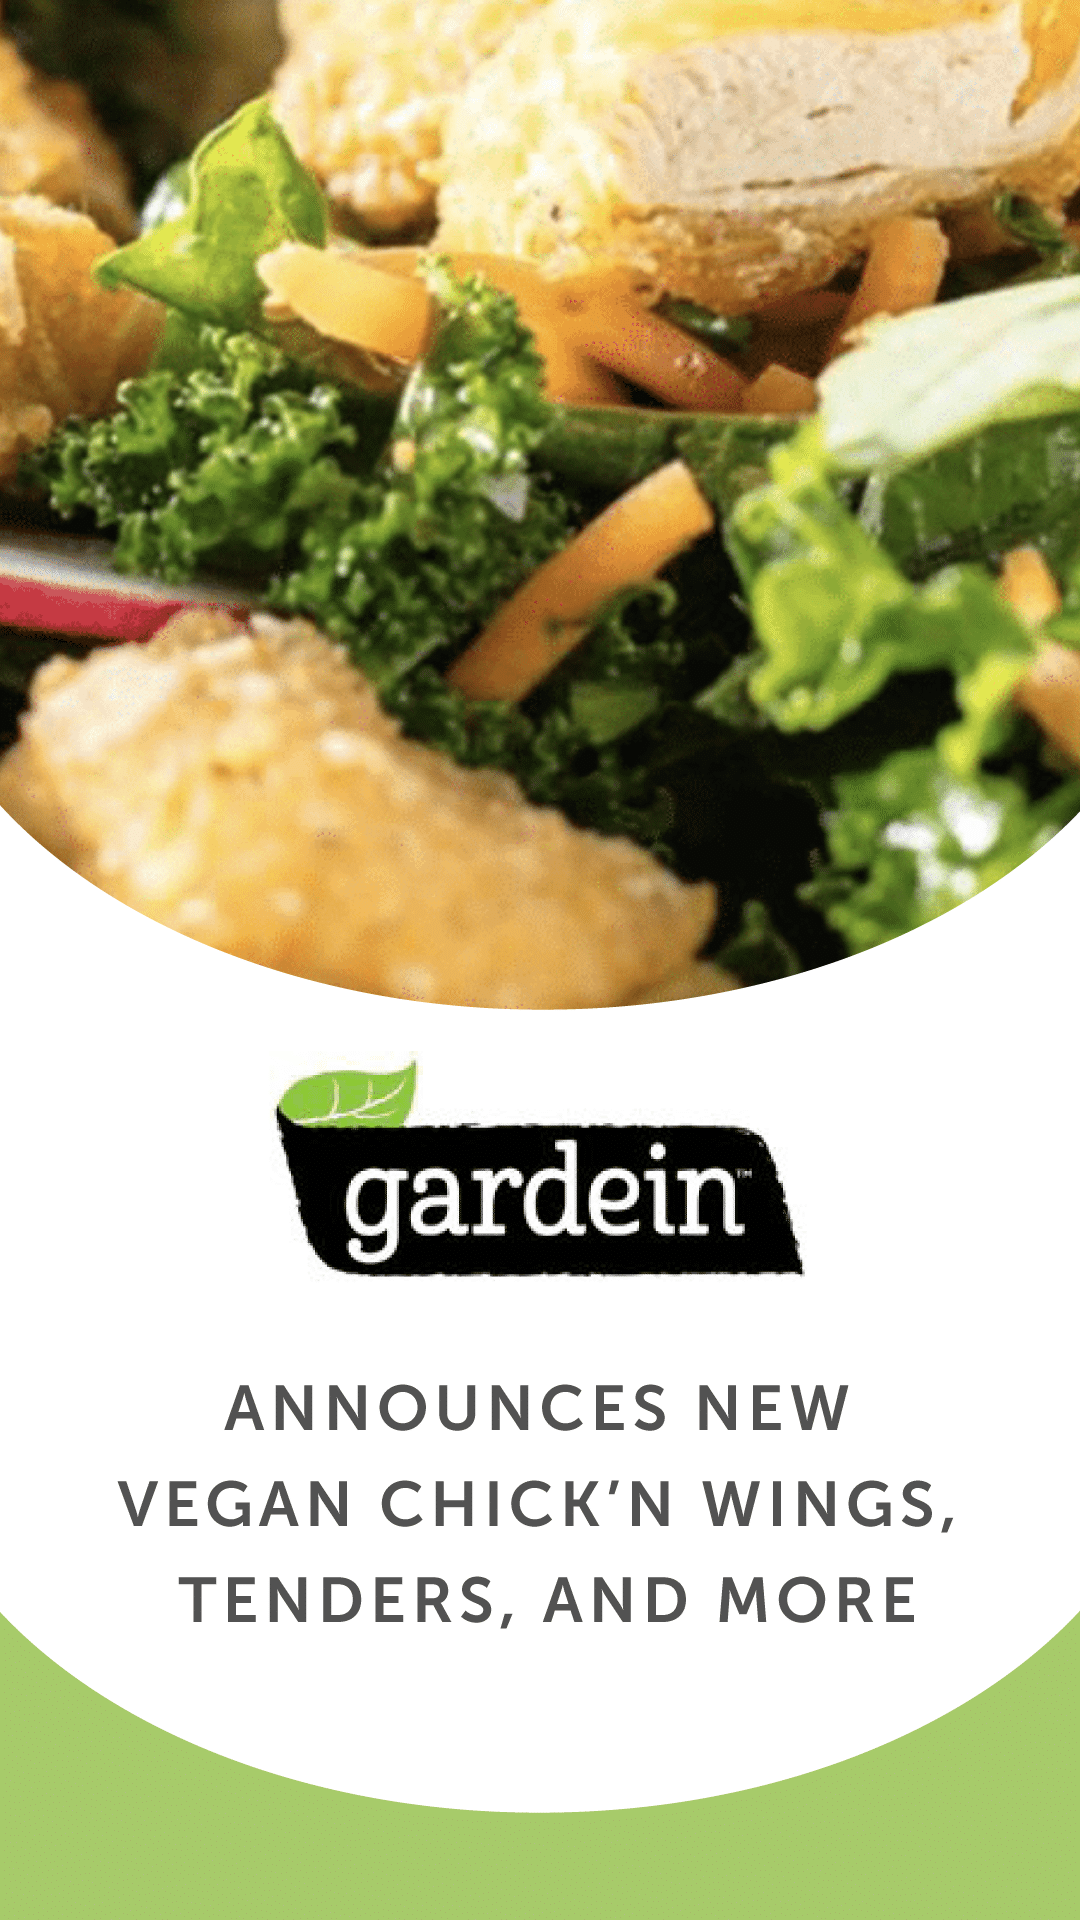 Gardein Announces New Vegan Chick'n Wings, Tenders, and More